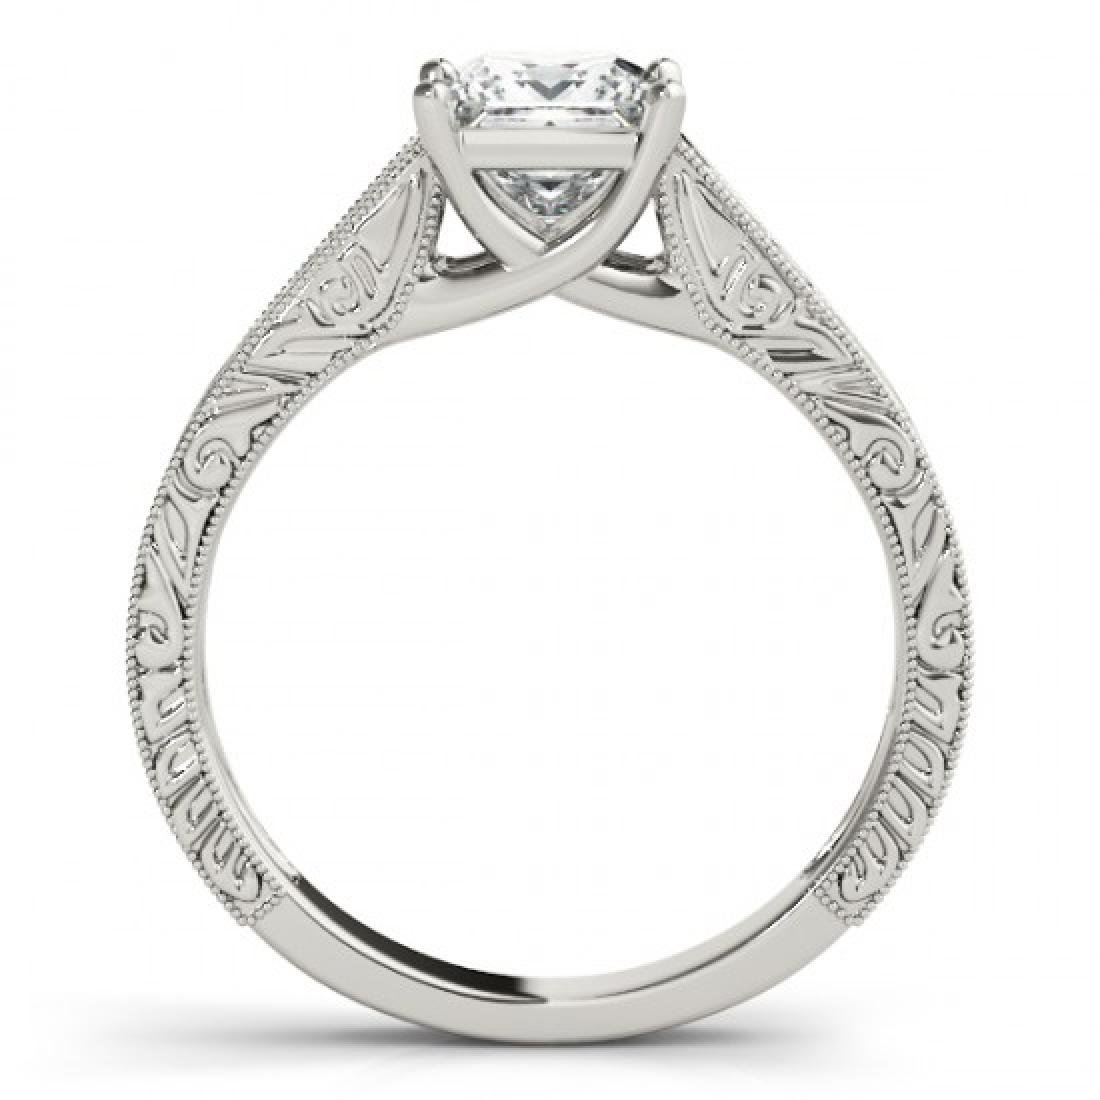 0.5 CTW Certified VS/SI Princess Diamond Ring 14K White - 2